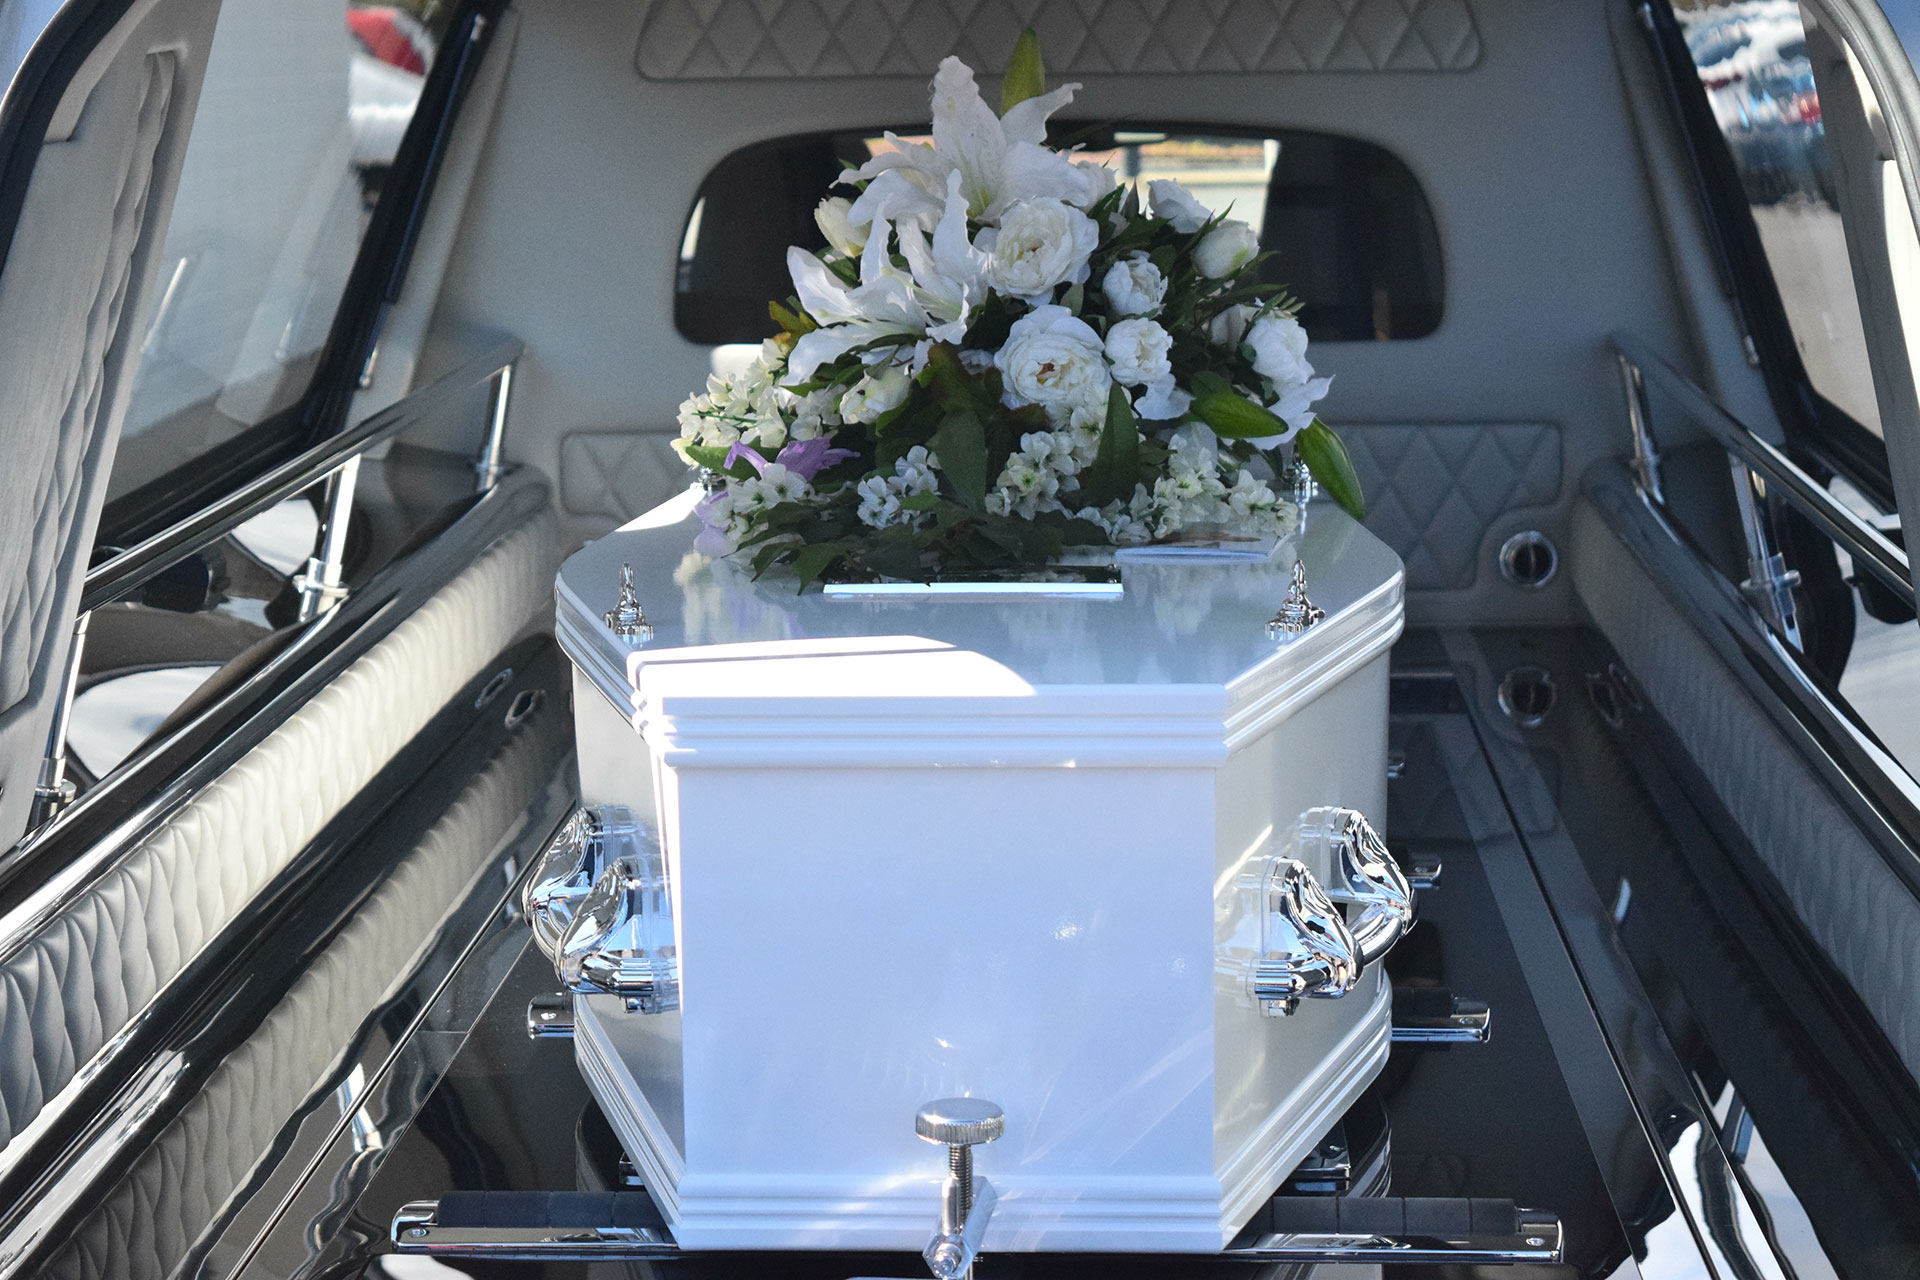 Coffin in Back of Hearse